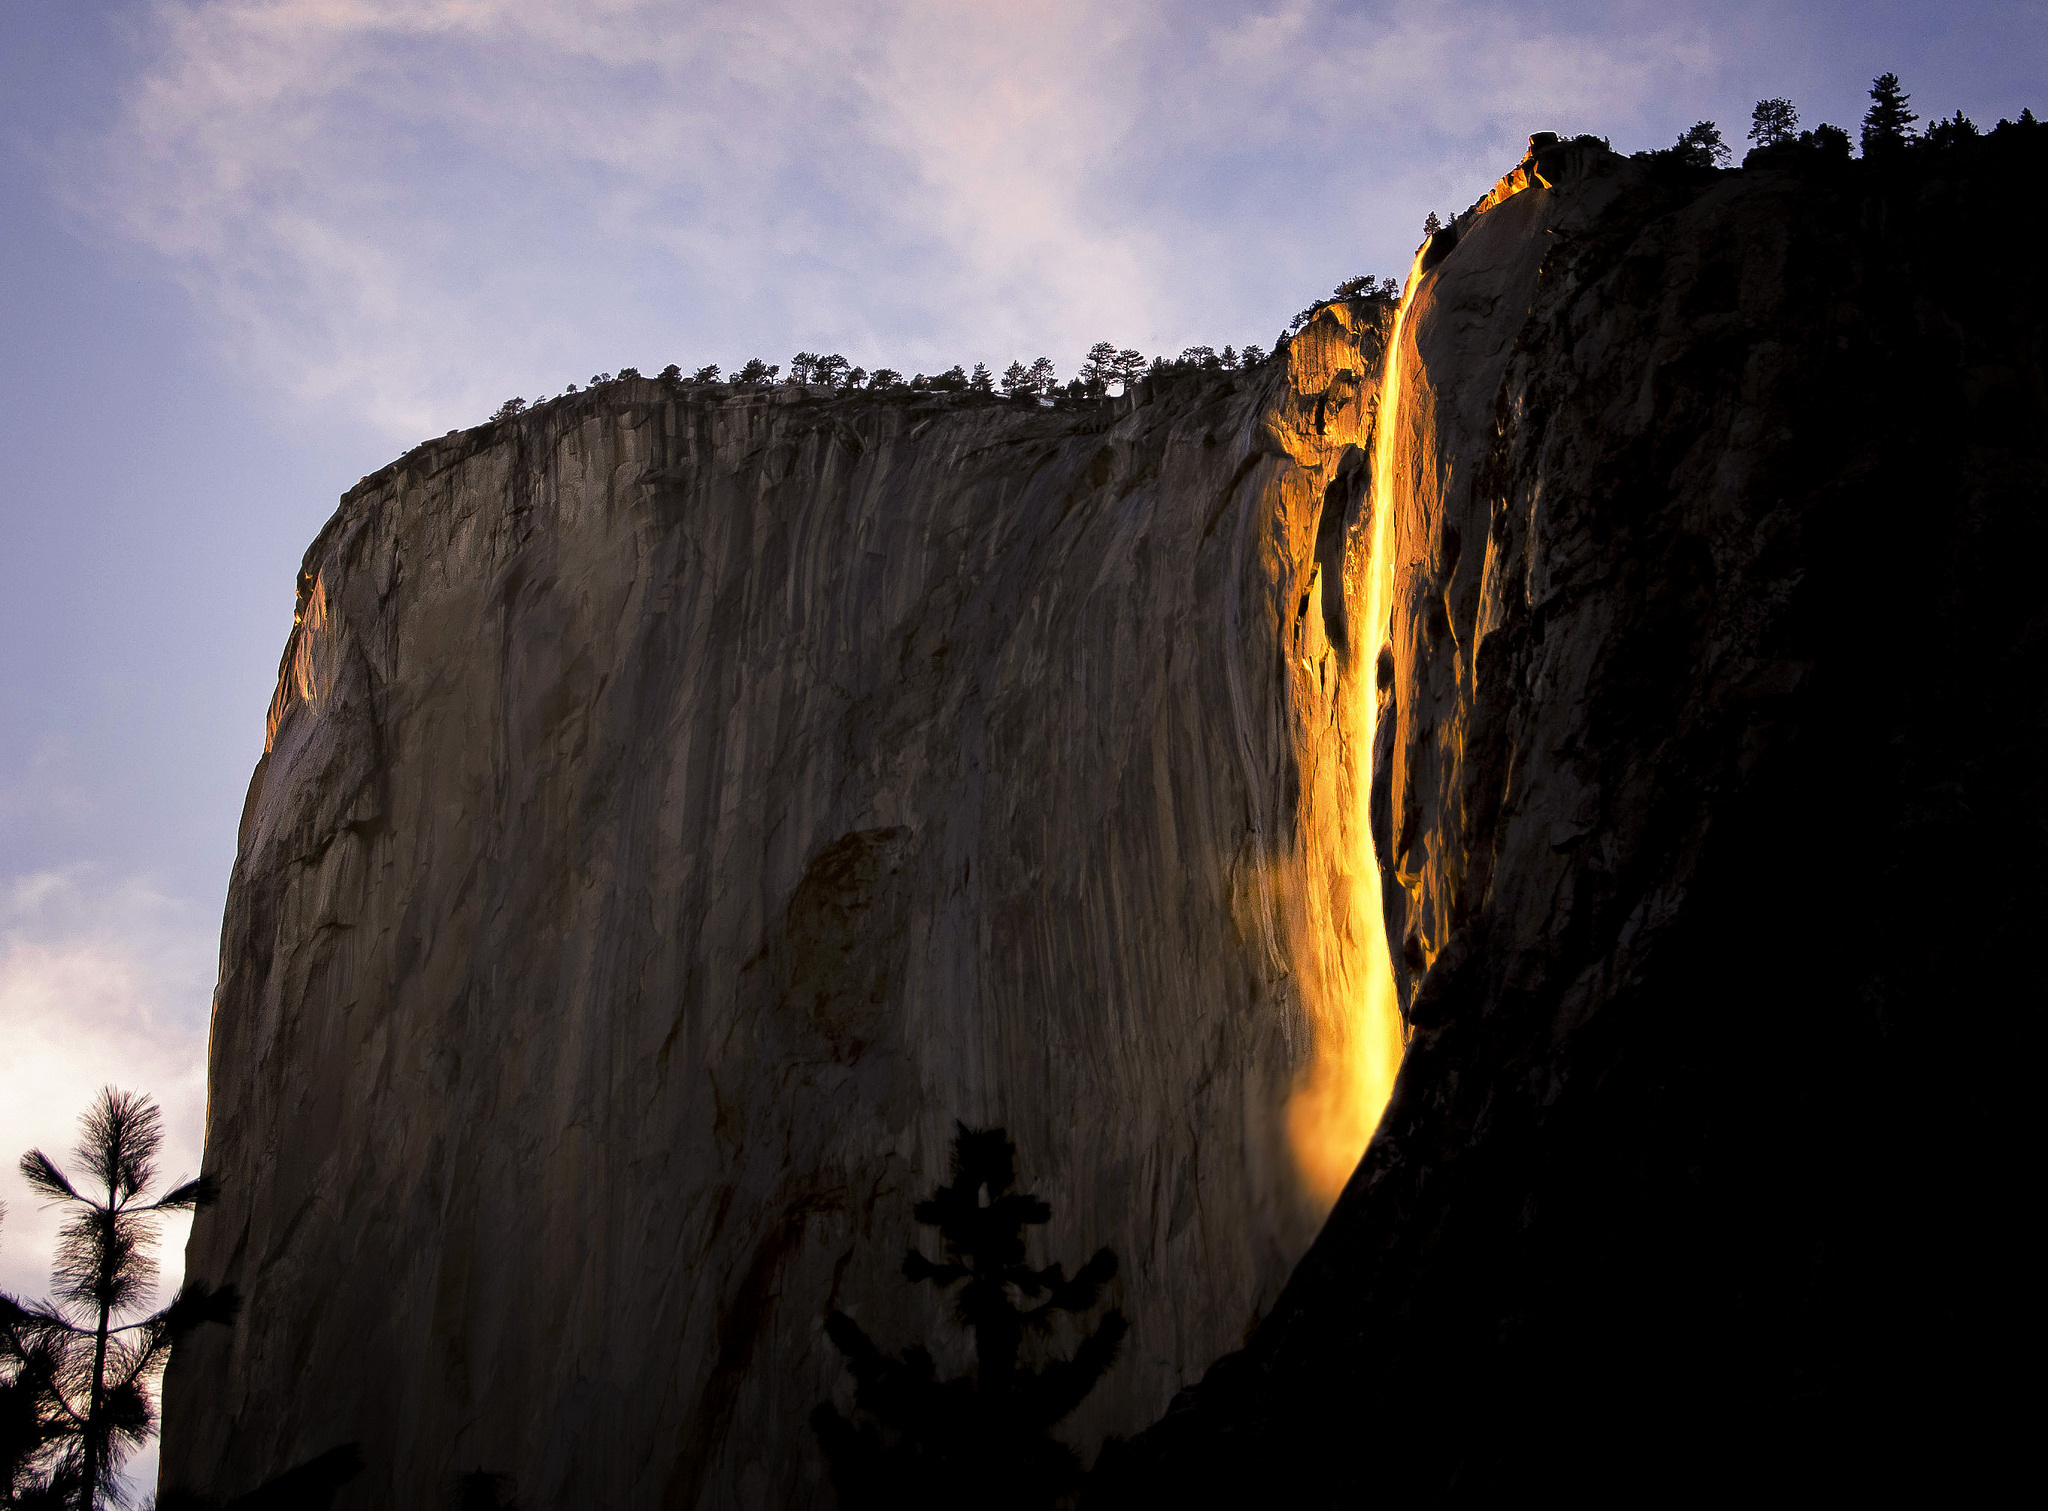 Yosemite's famous firefall will glow again this month